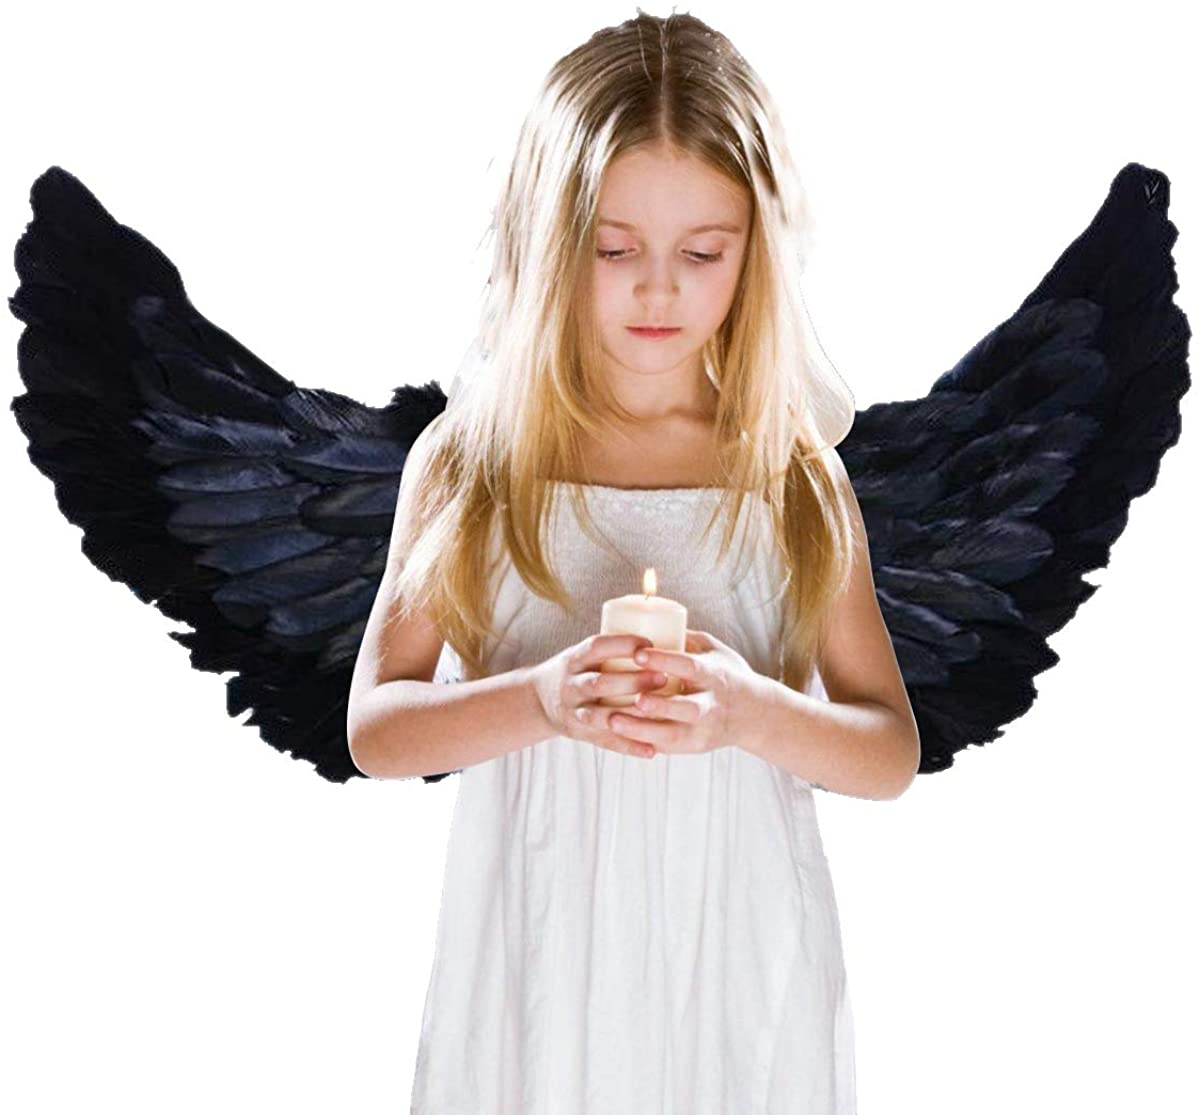 AOOTOOSPORT Children's Black Feathers Angel Wings Costumes for Cosplay Halloween Party